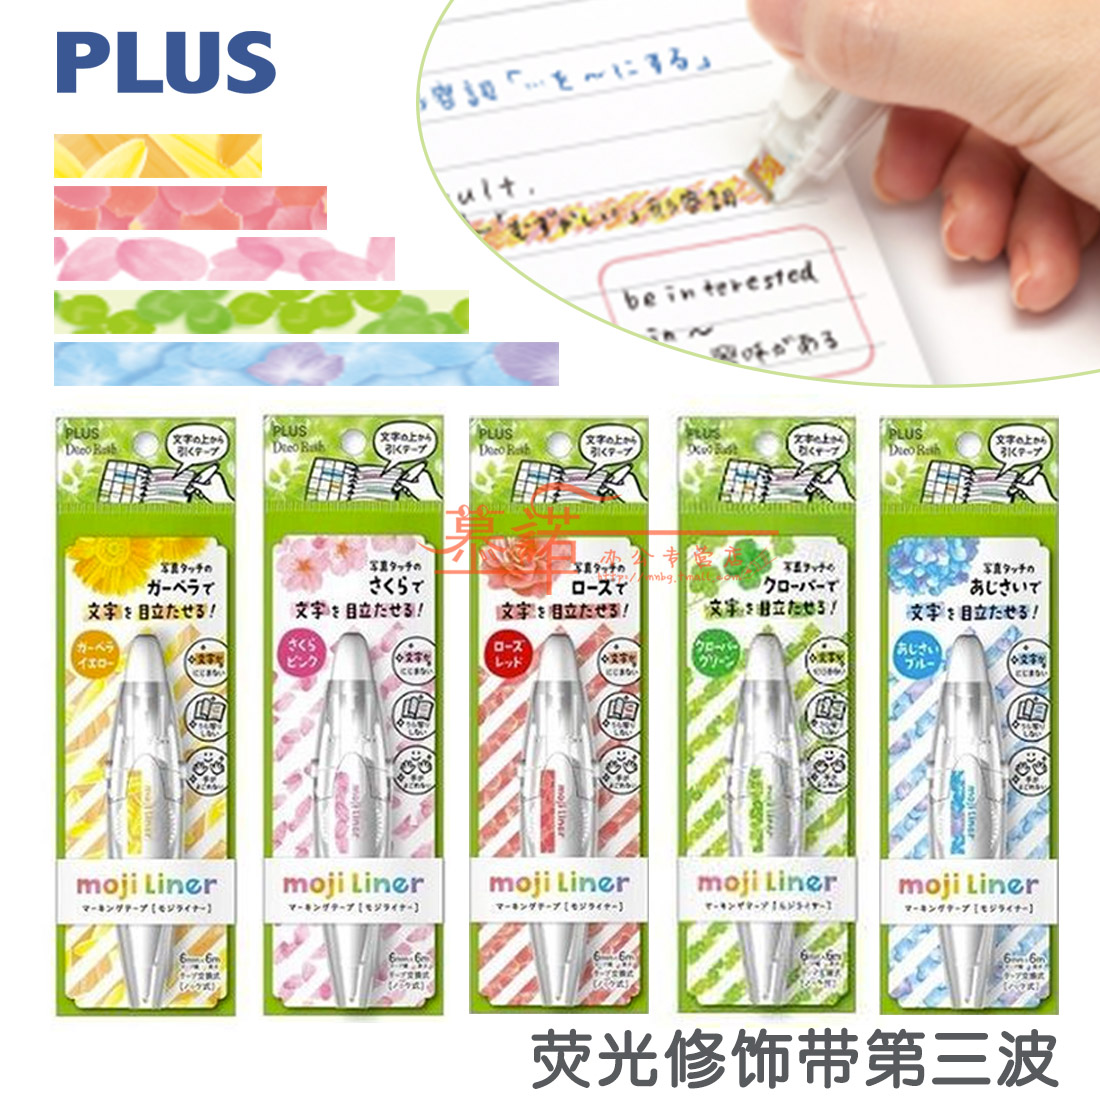 Japan plus plus moji liner leaves flowers series of modified with/diy lace trimmings